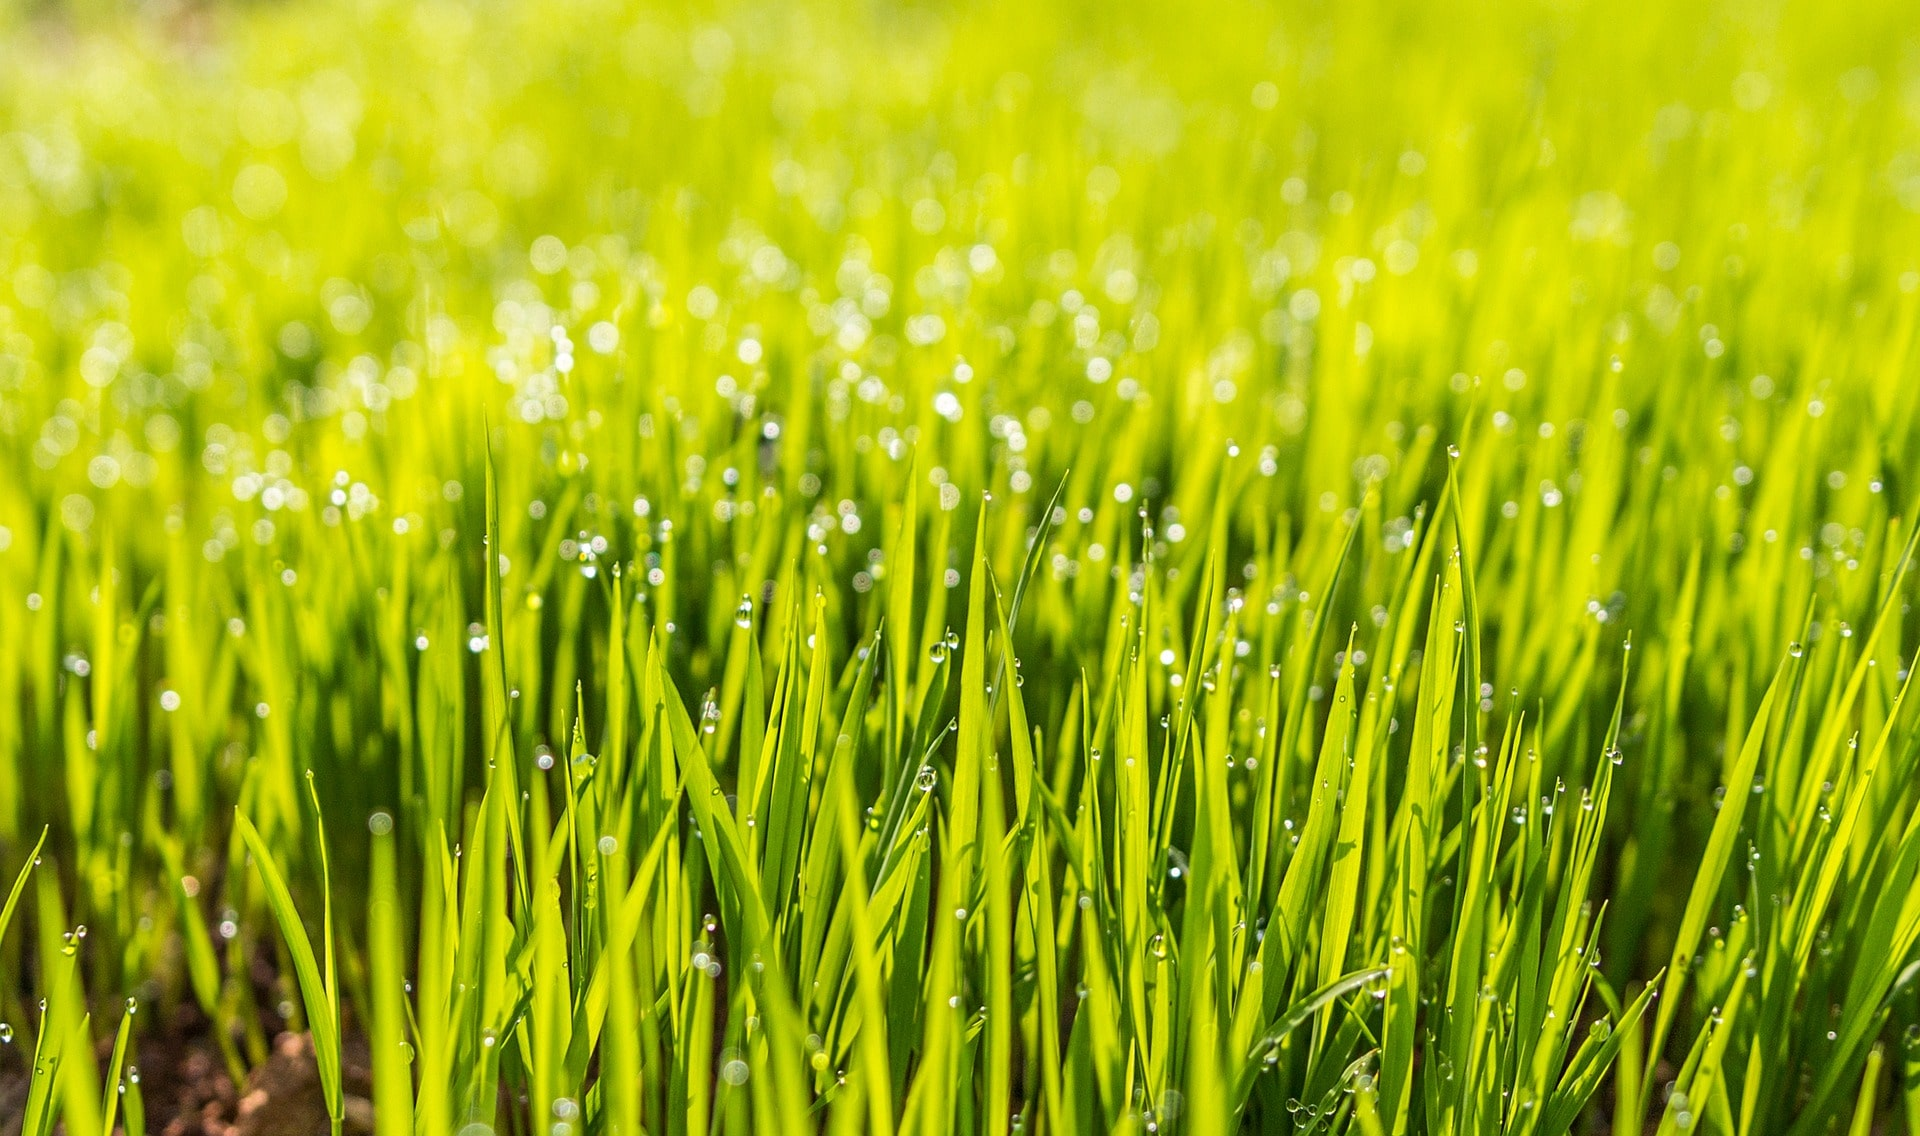 Grass with dew growing in warm climate.